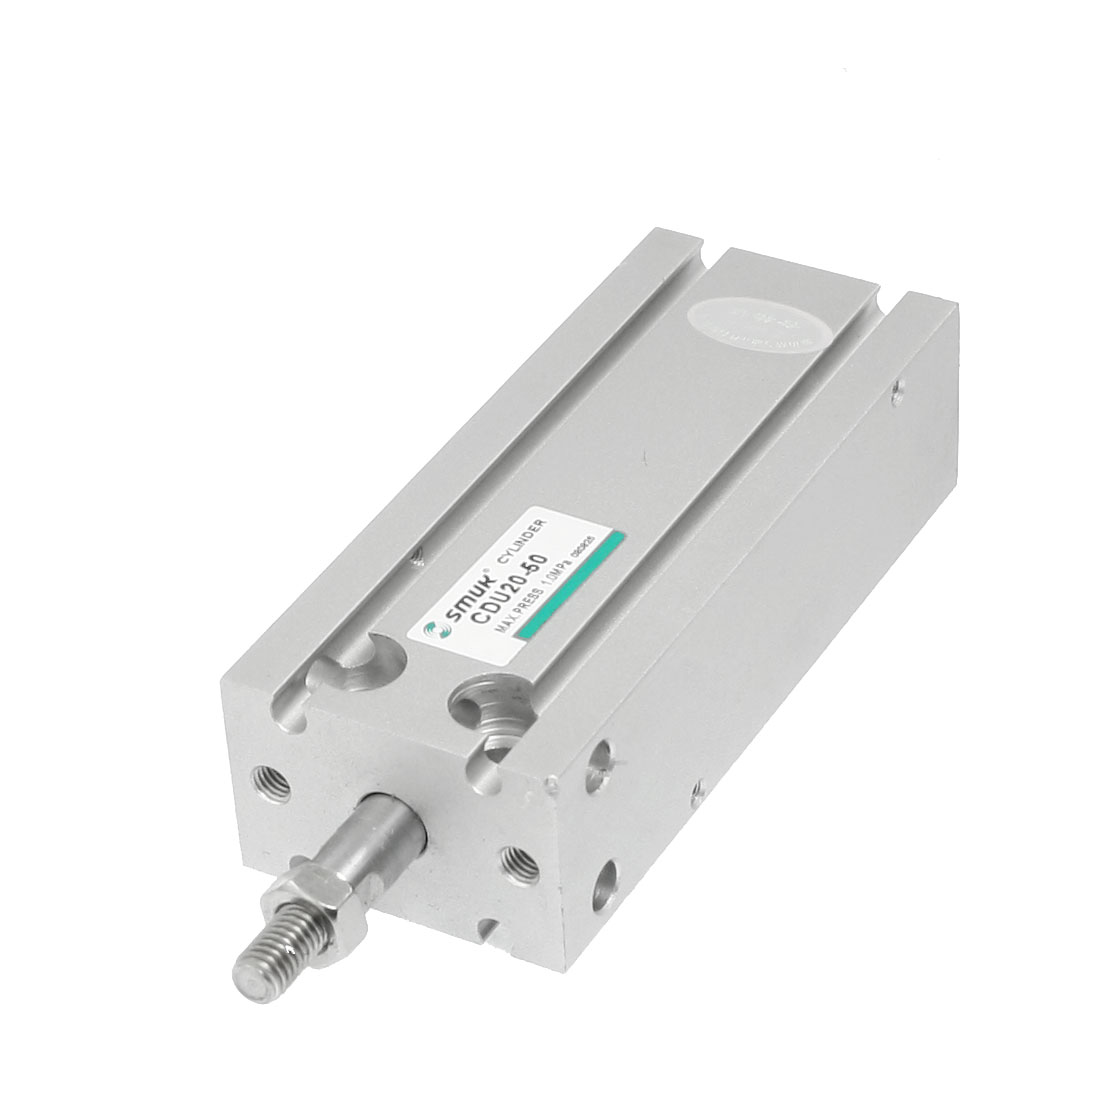 CDU 20-50 Single Rod Double Acting Pneumatic Air Cylinder